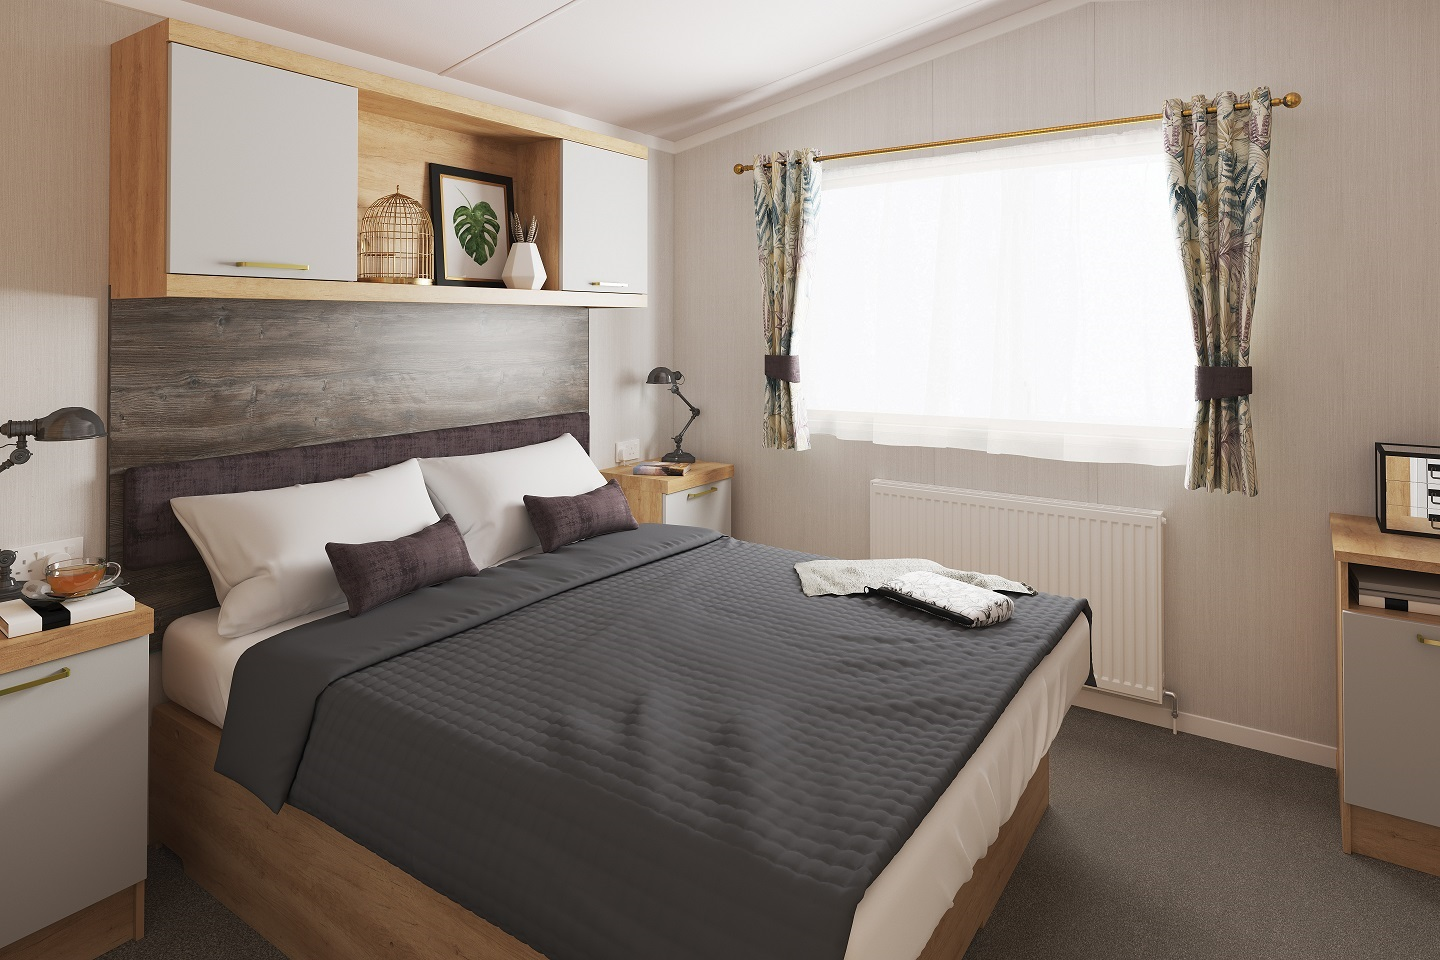 Swift Bordeaux: New Static Caravans and Holiday Homes for Sale, Available to Order Large Image 3